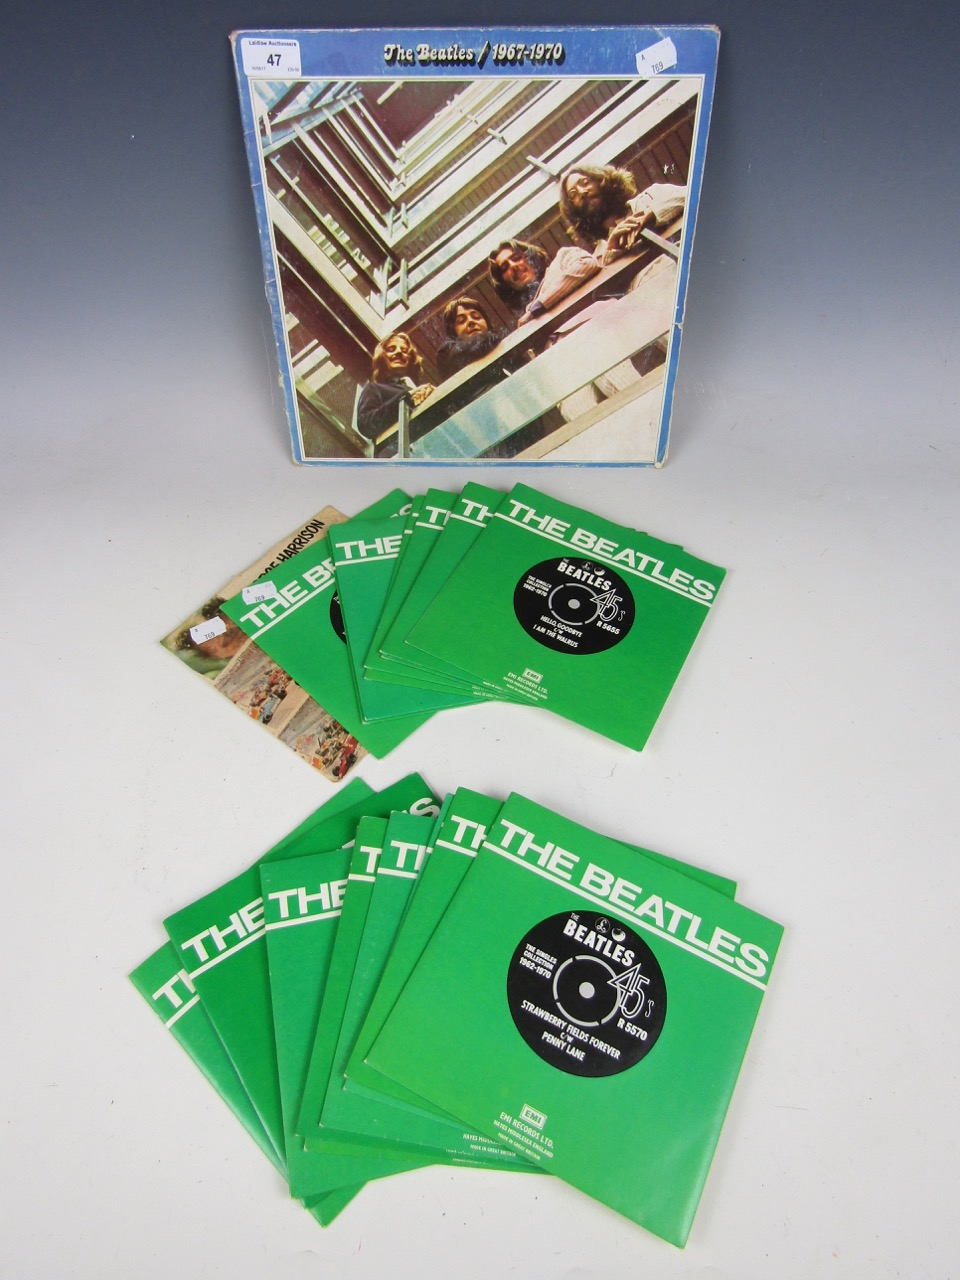 Lot 47 - The Beatles, vinyl records including 18 singles from the series The Singles Collection 1962-1970